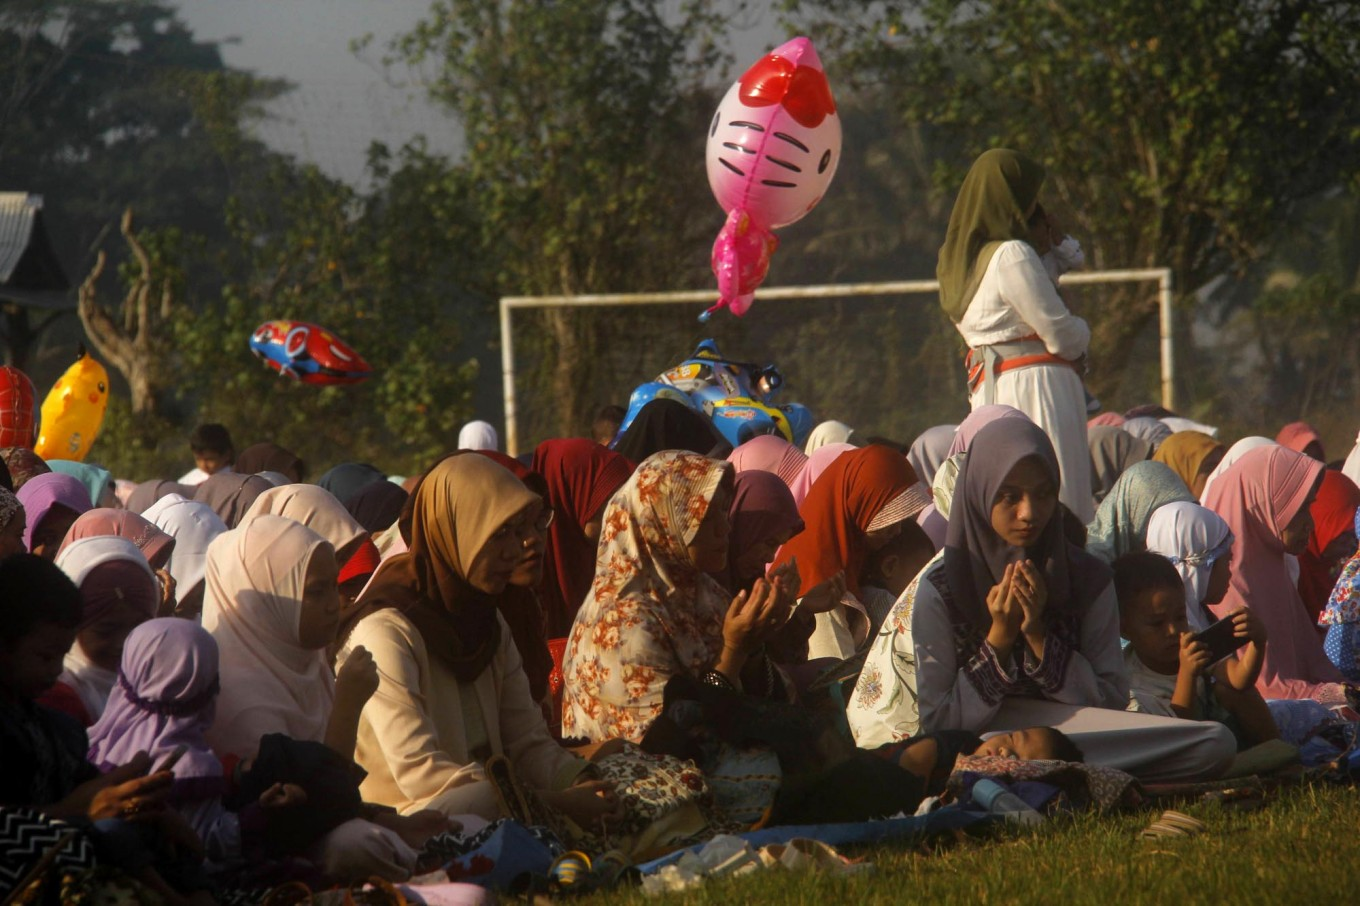 Colorful balloons for sale adorn the background in Payaman, Secang, Magelang, Central Java, as the Idul Fitri mass prayer is observed in a local field on Sunday, June 25, 2017. JP/Syamsul Huda M. Suhari